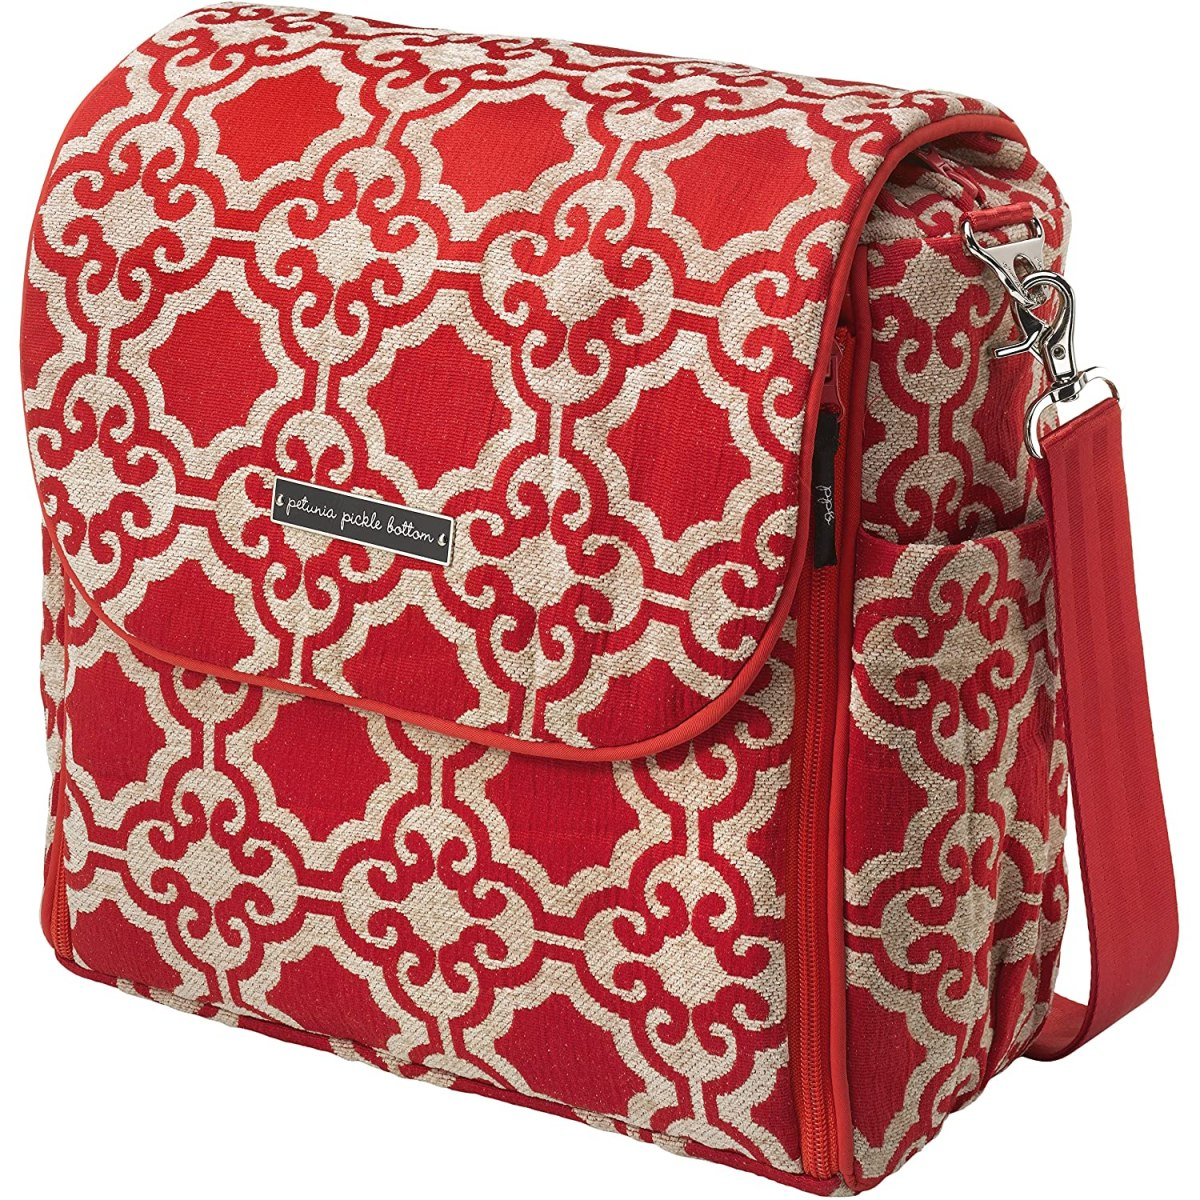 Petunia Pickle Bottom Boxy Backpack Diaper Bag in Persimmon Spice